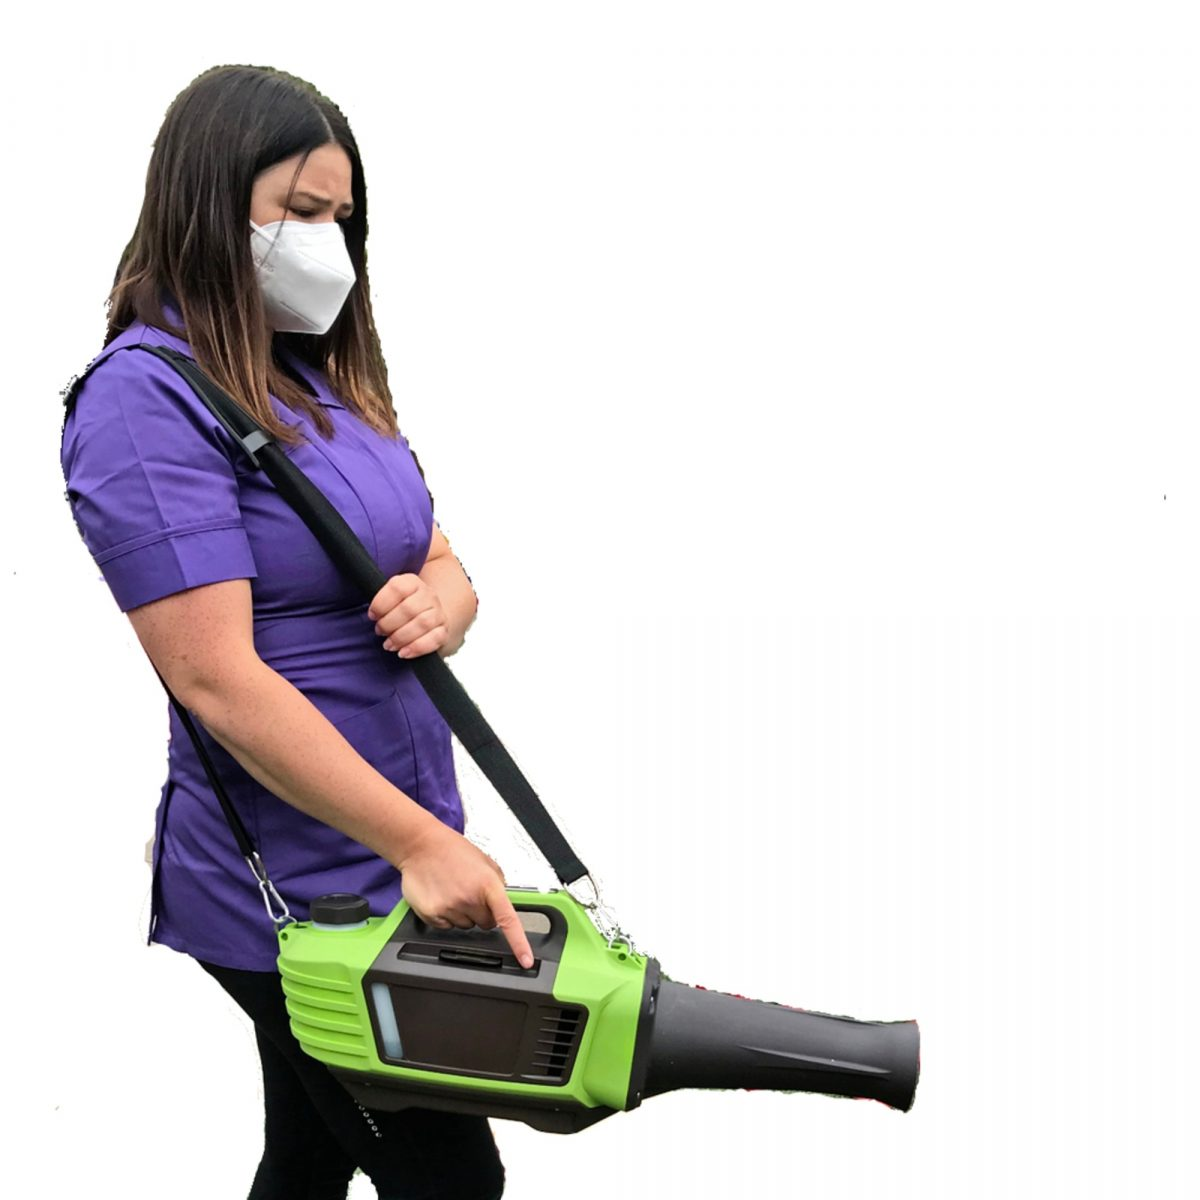 A lady using the Greengauge Travel 2000 Fogger